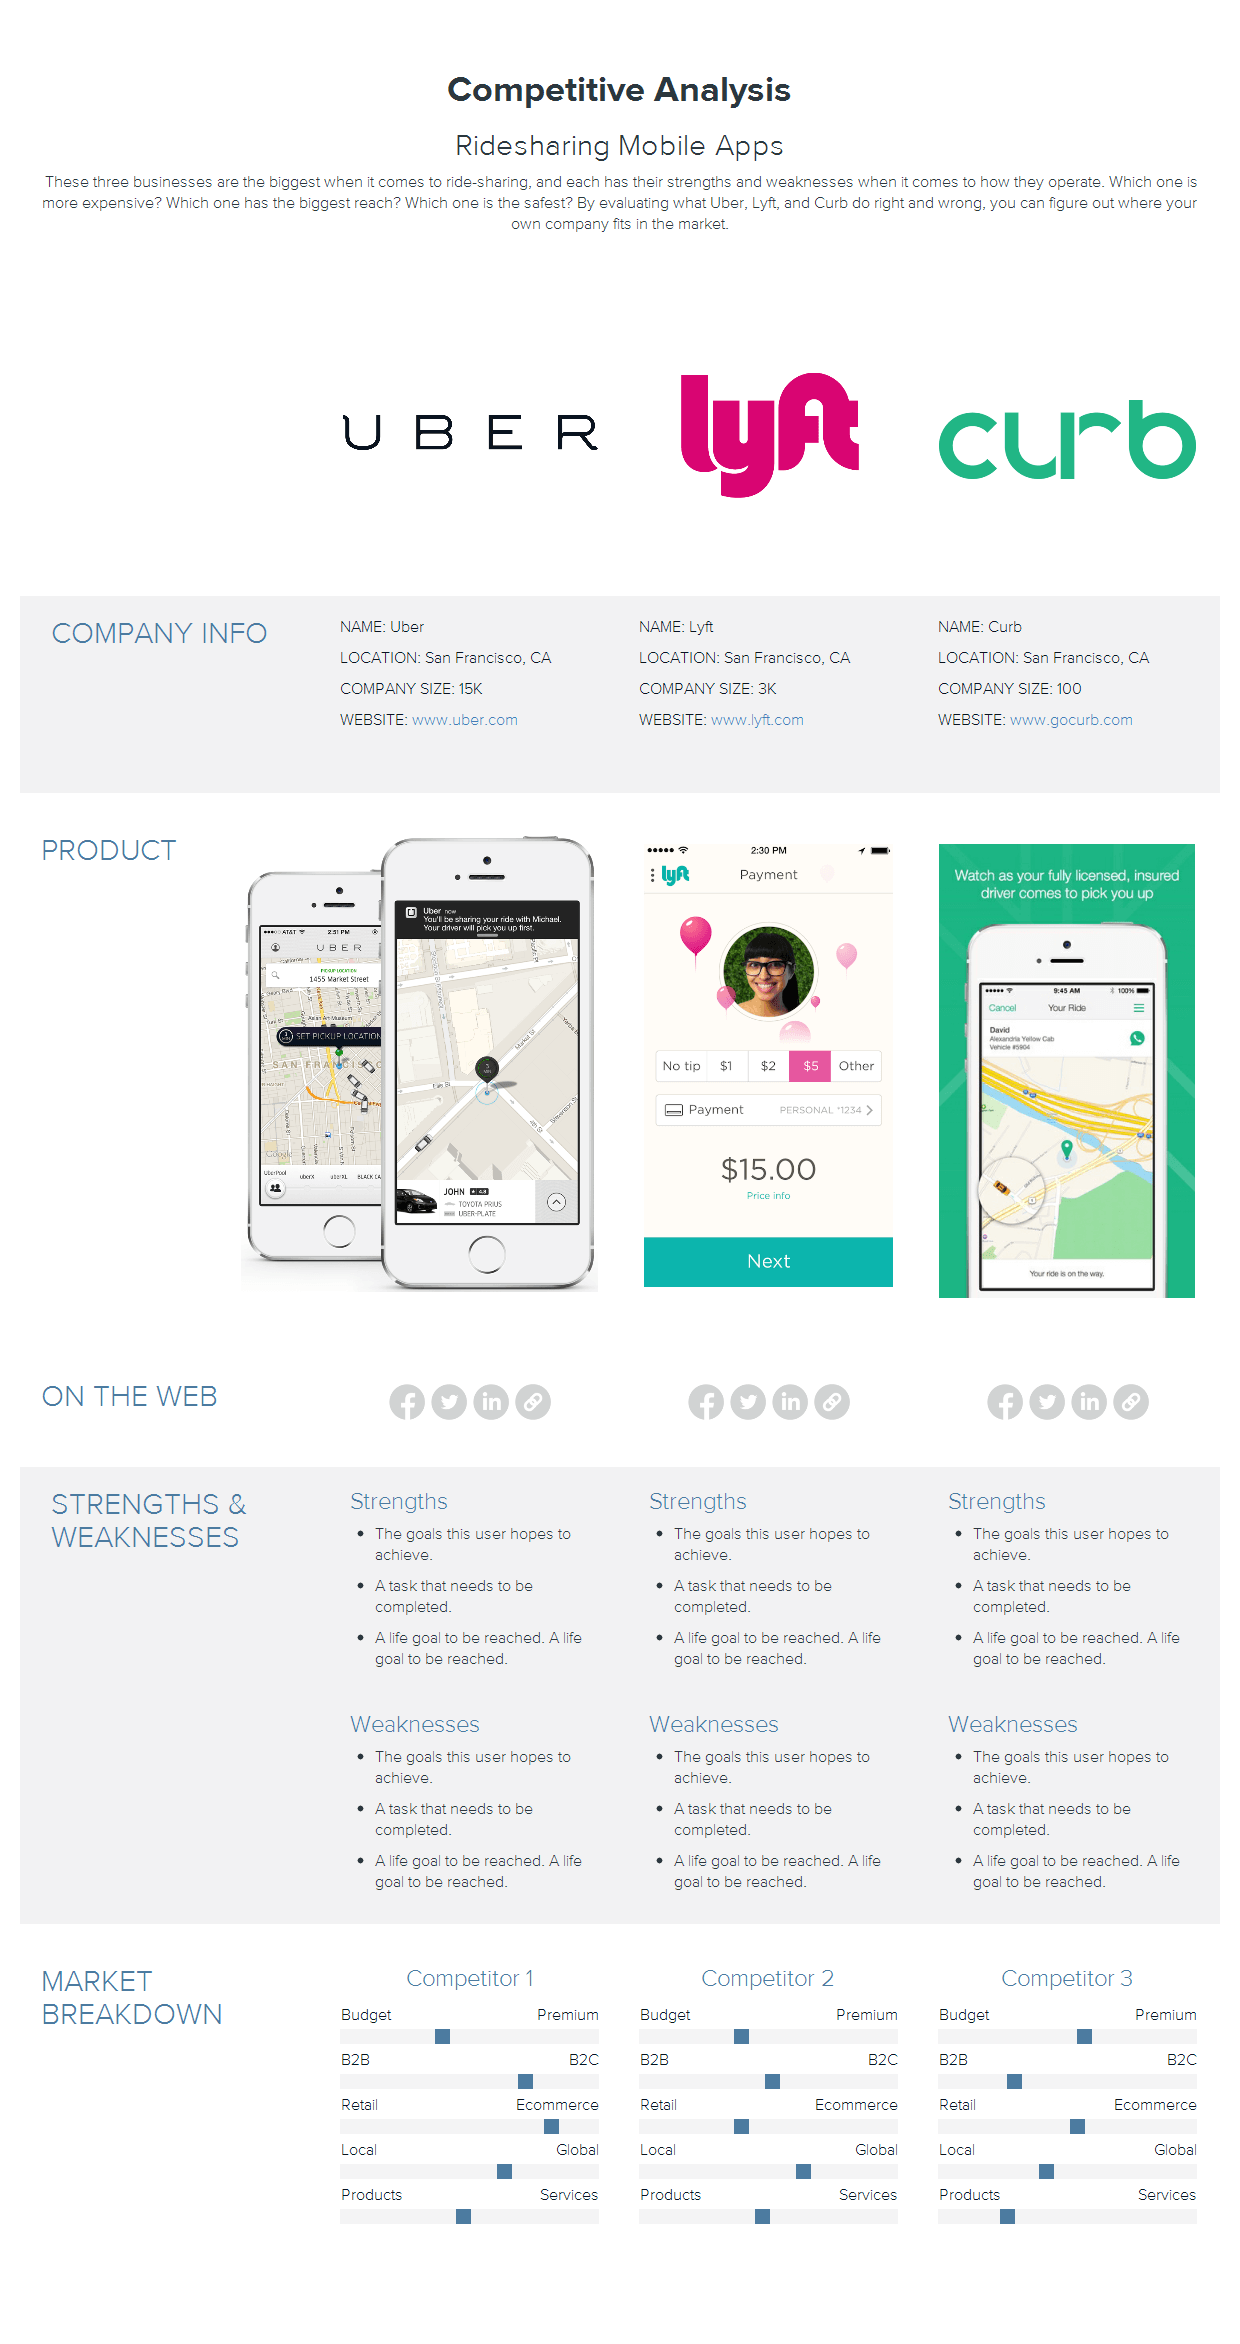 Ridesharing Apps Competitive Analysis Sample By Xtensio  Competitors Analysis Template